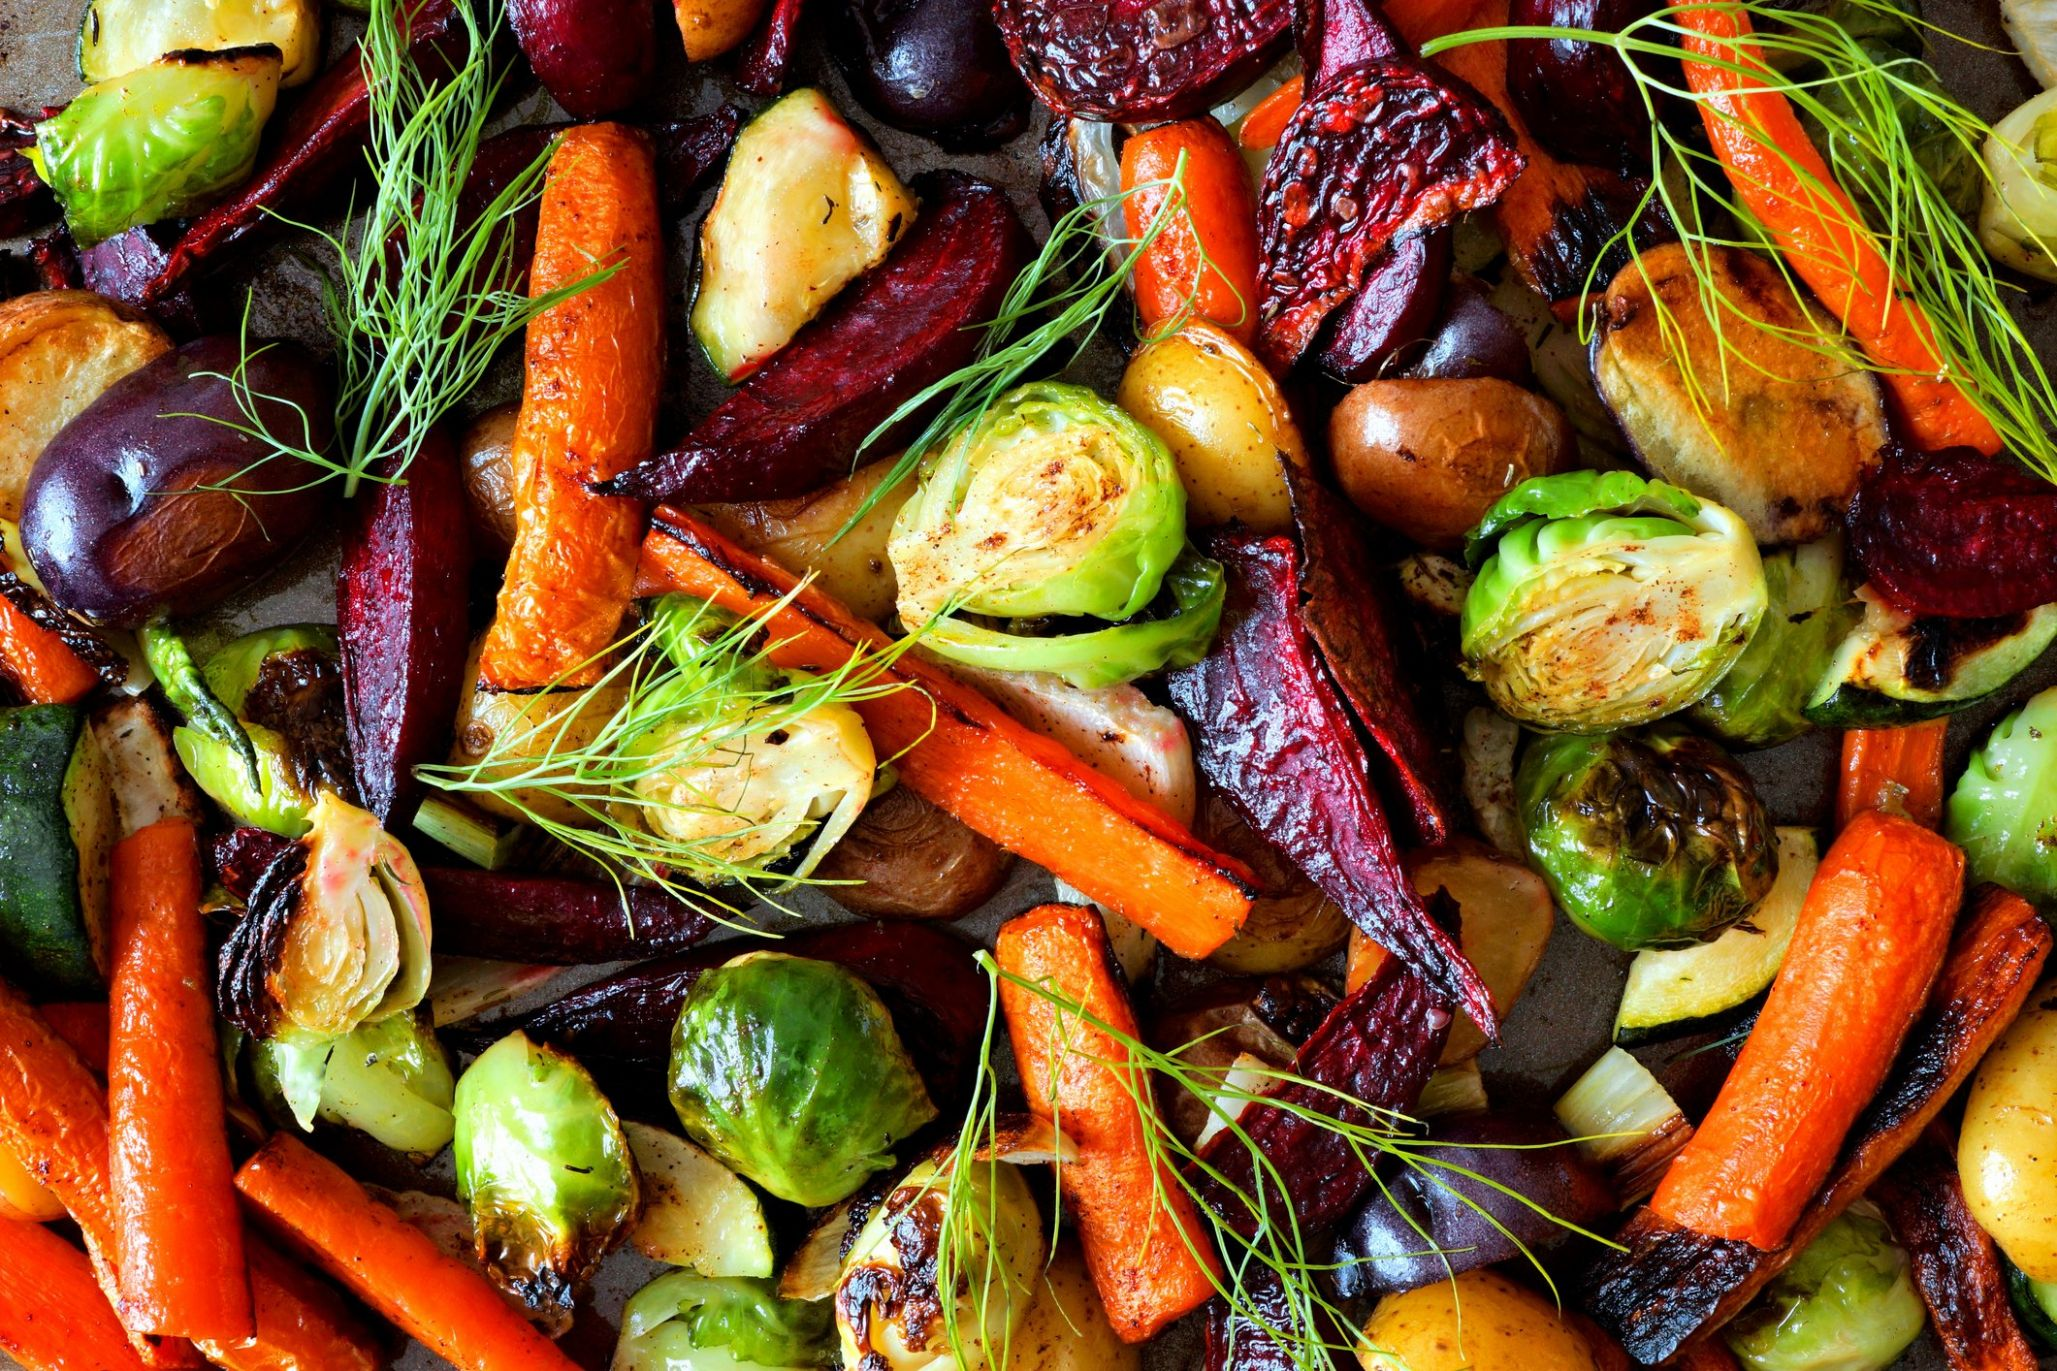 Ultimate Roasted Vegetable Medley from 'The Chew'